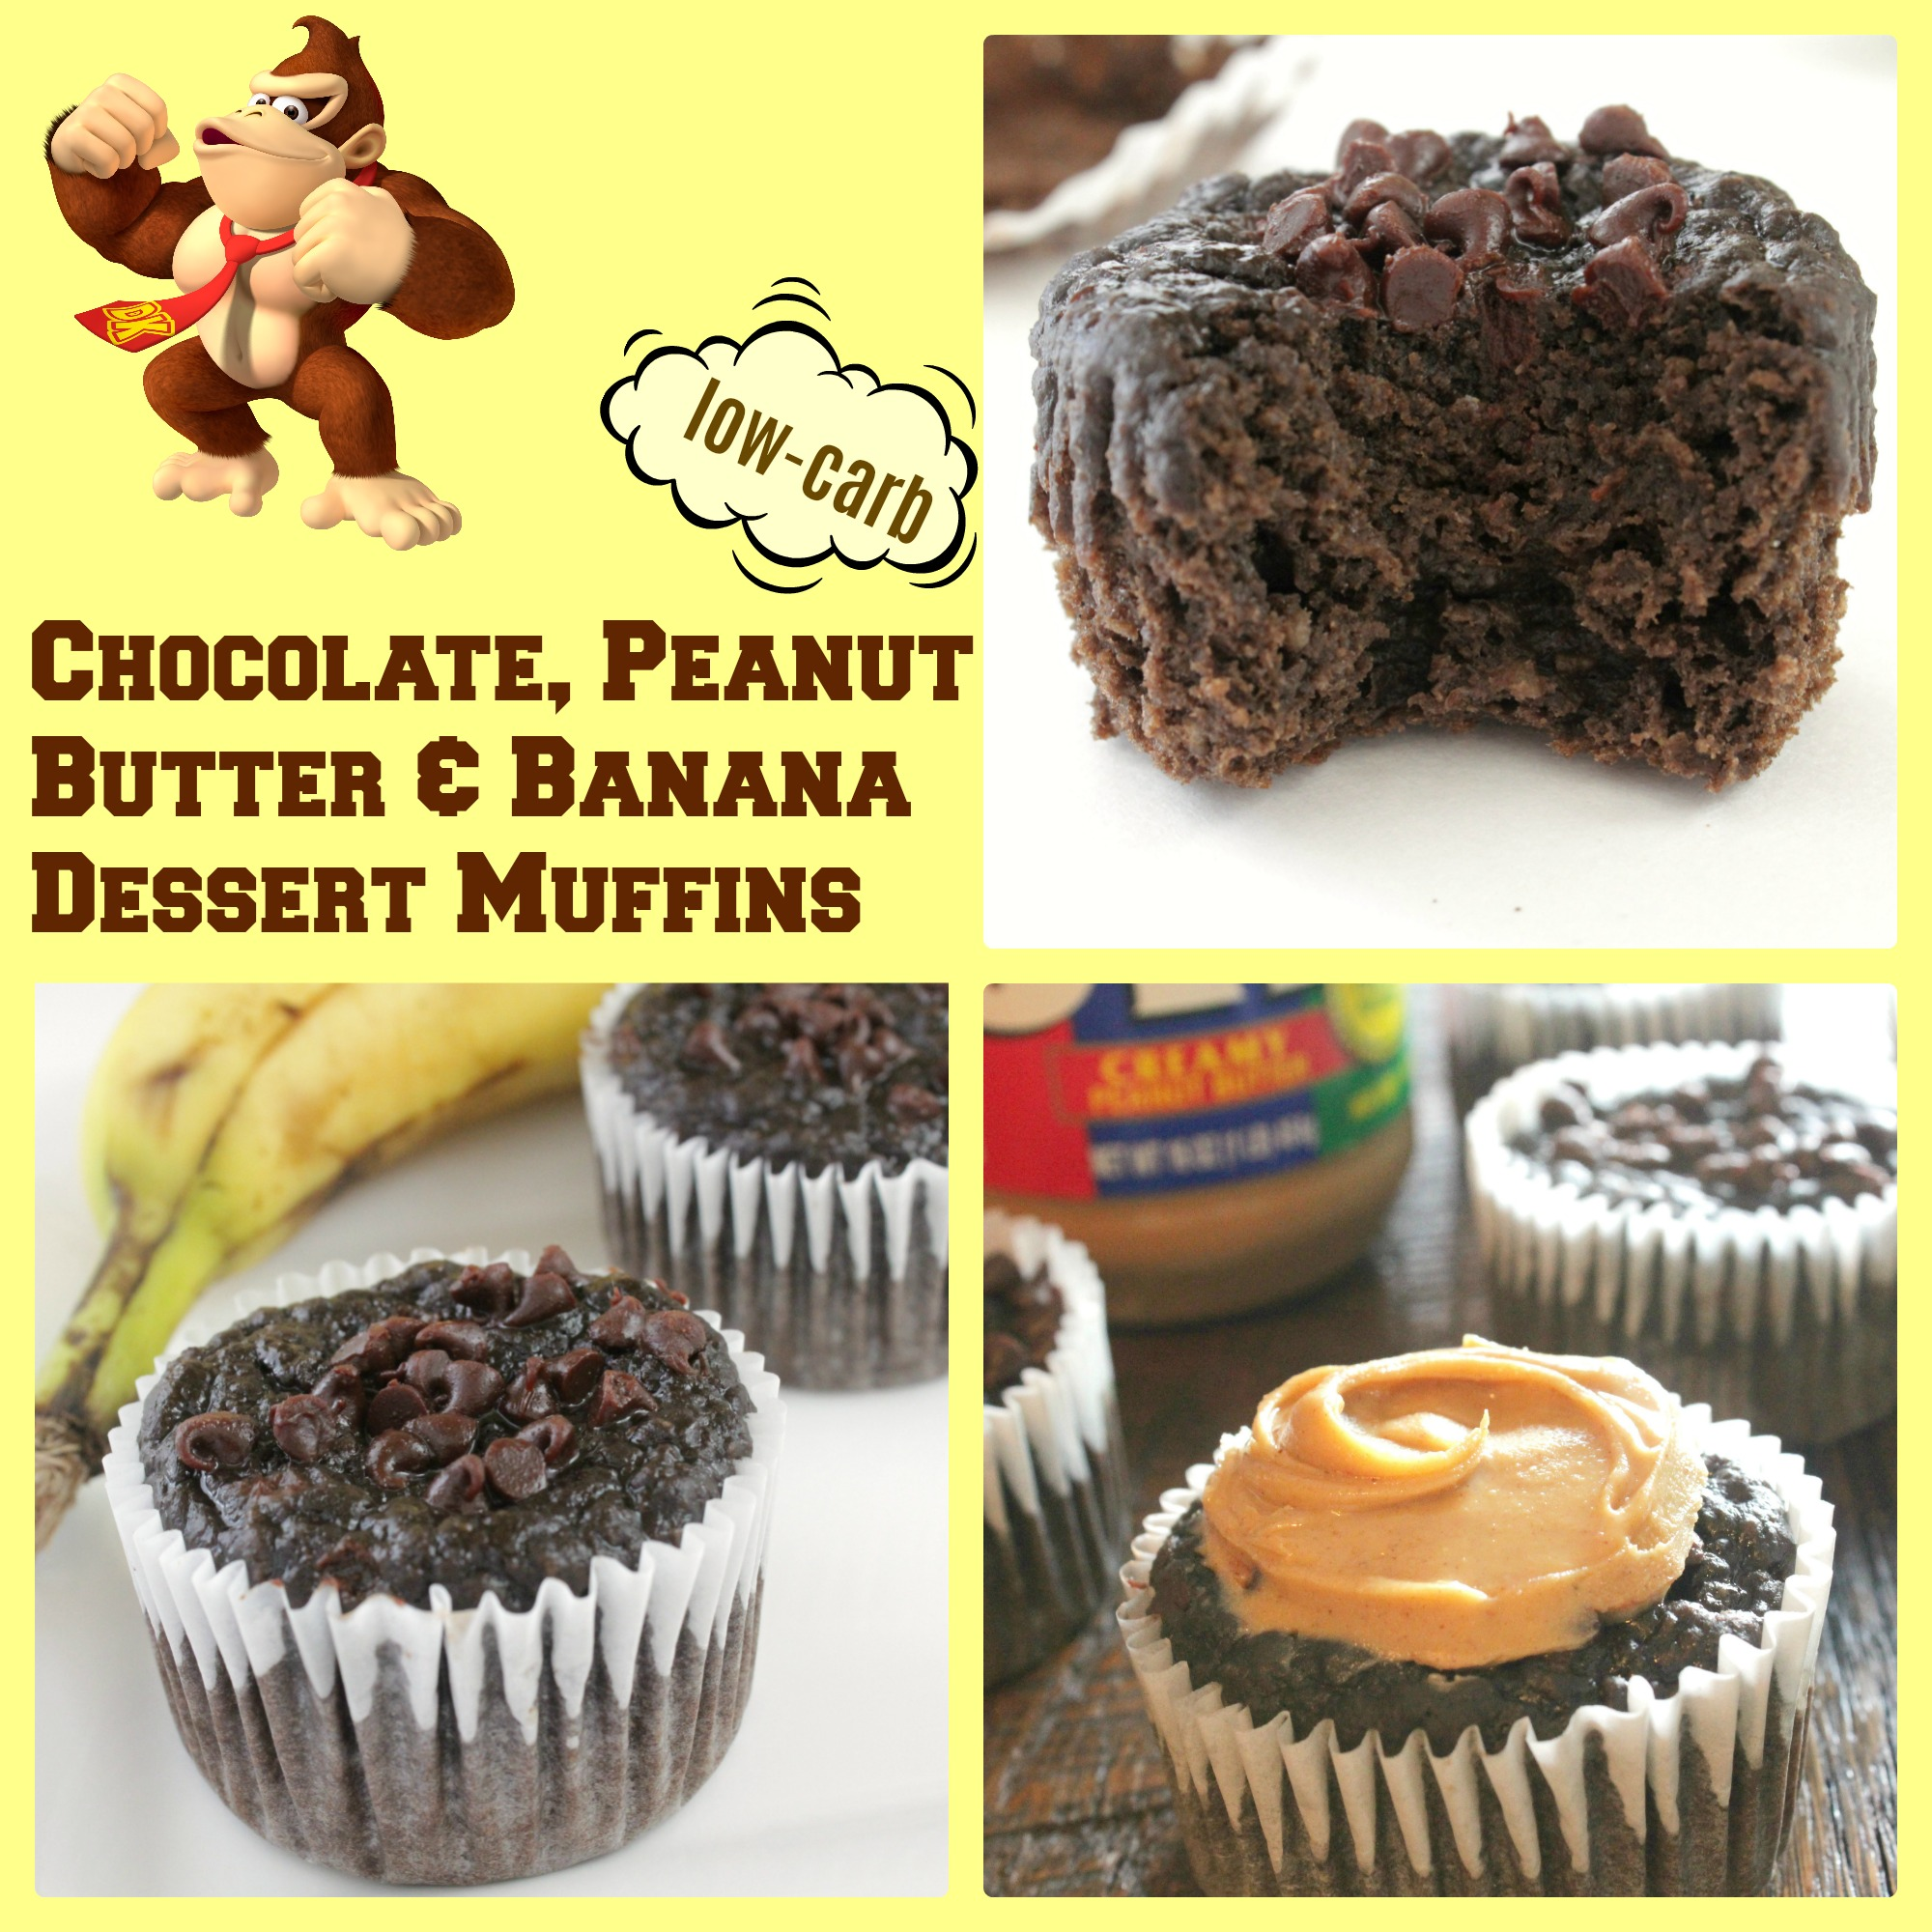 Cocoa Banana Low Carb Dessert Muffins with Peanut Butter - Guilt Free! :)